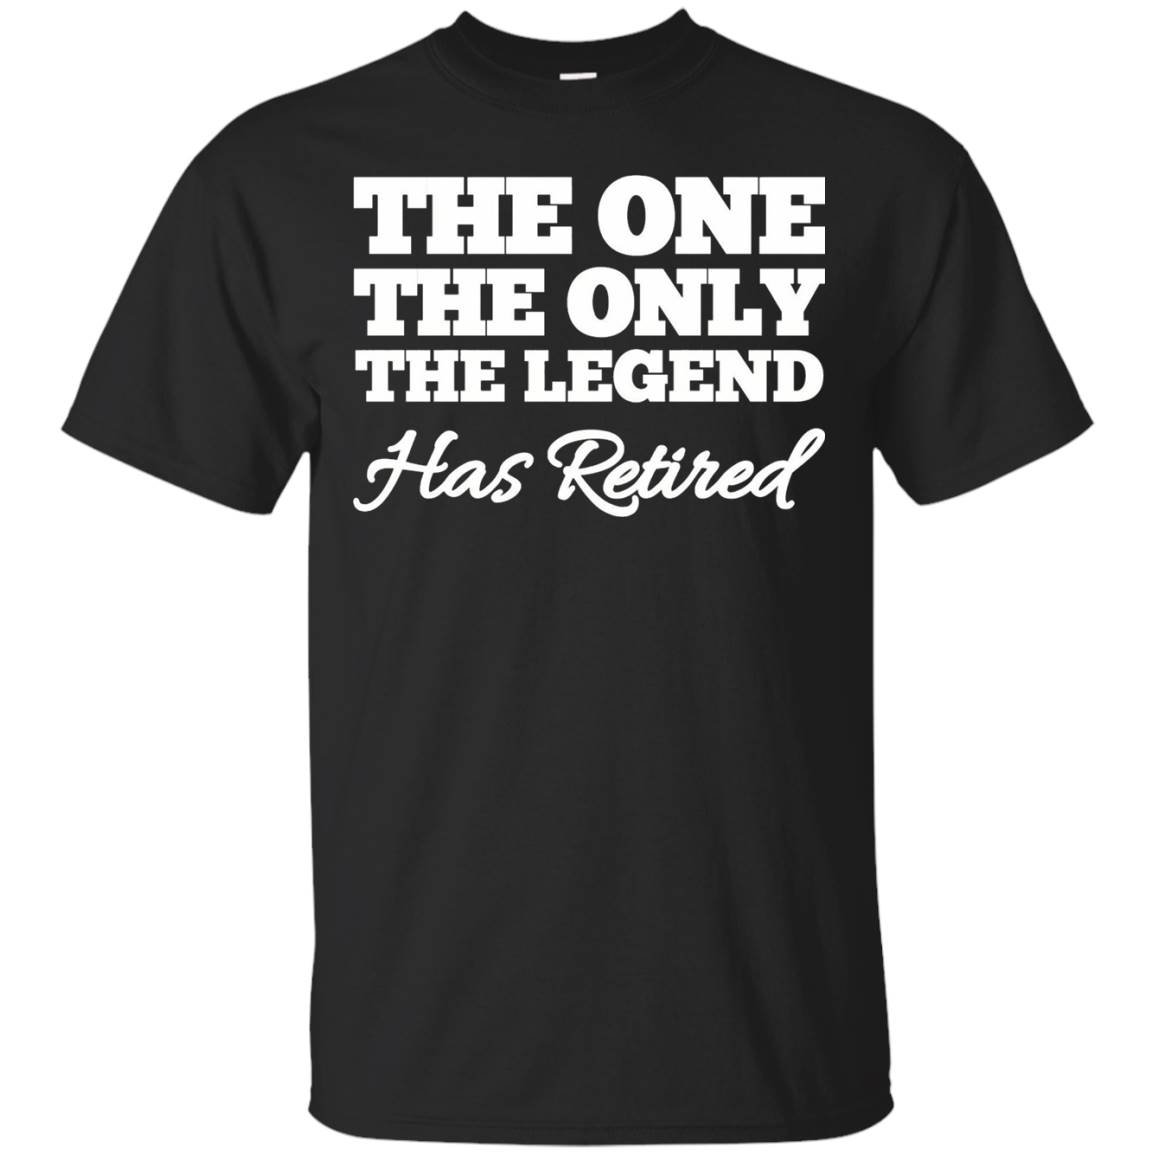 Men's Funny Retirement Gift The One Only Legend Retired TShirt